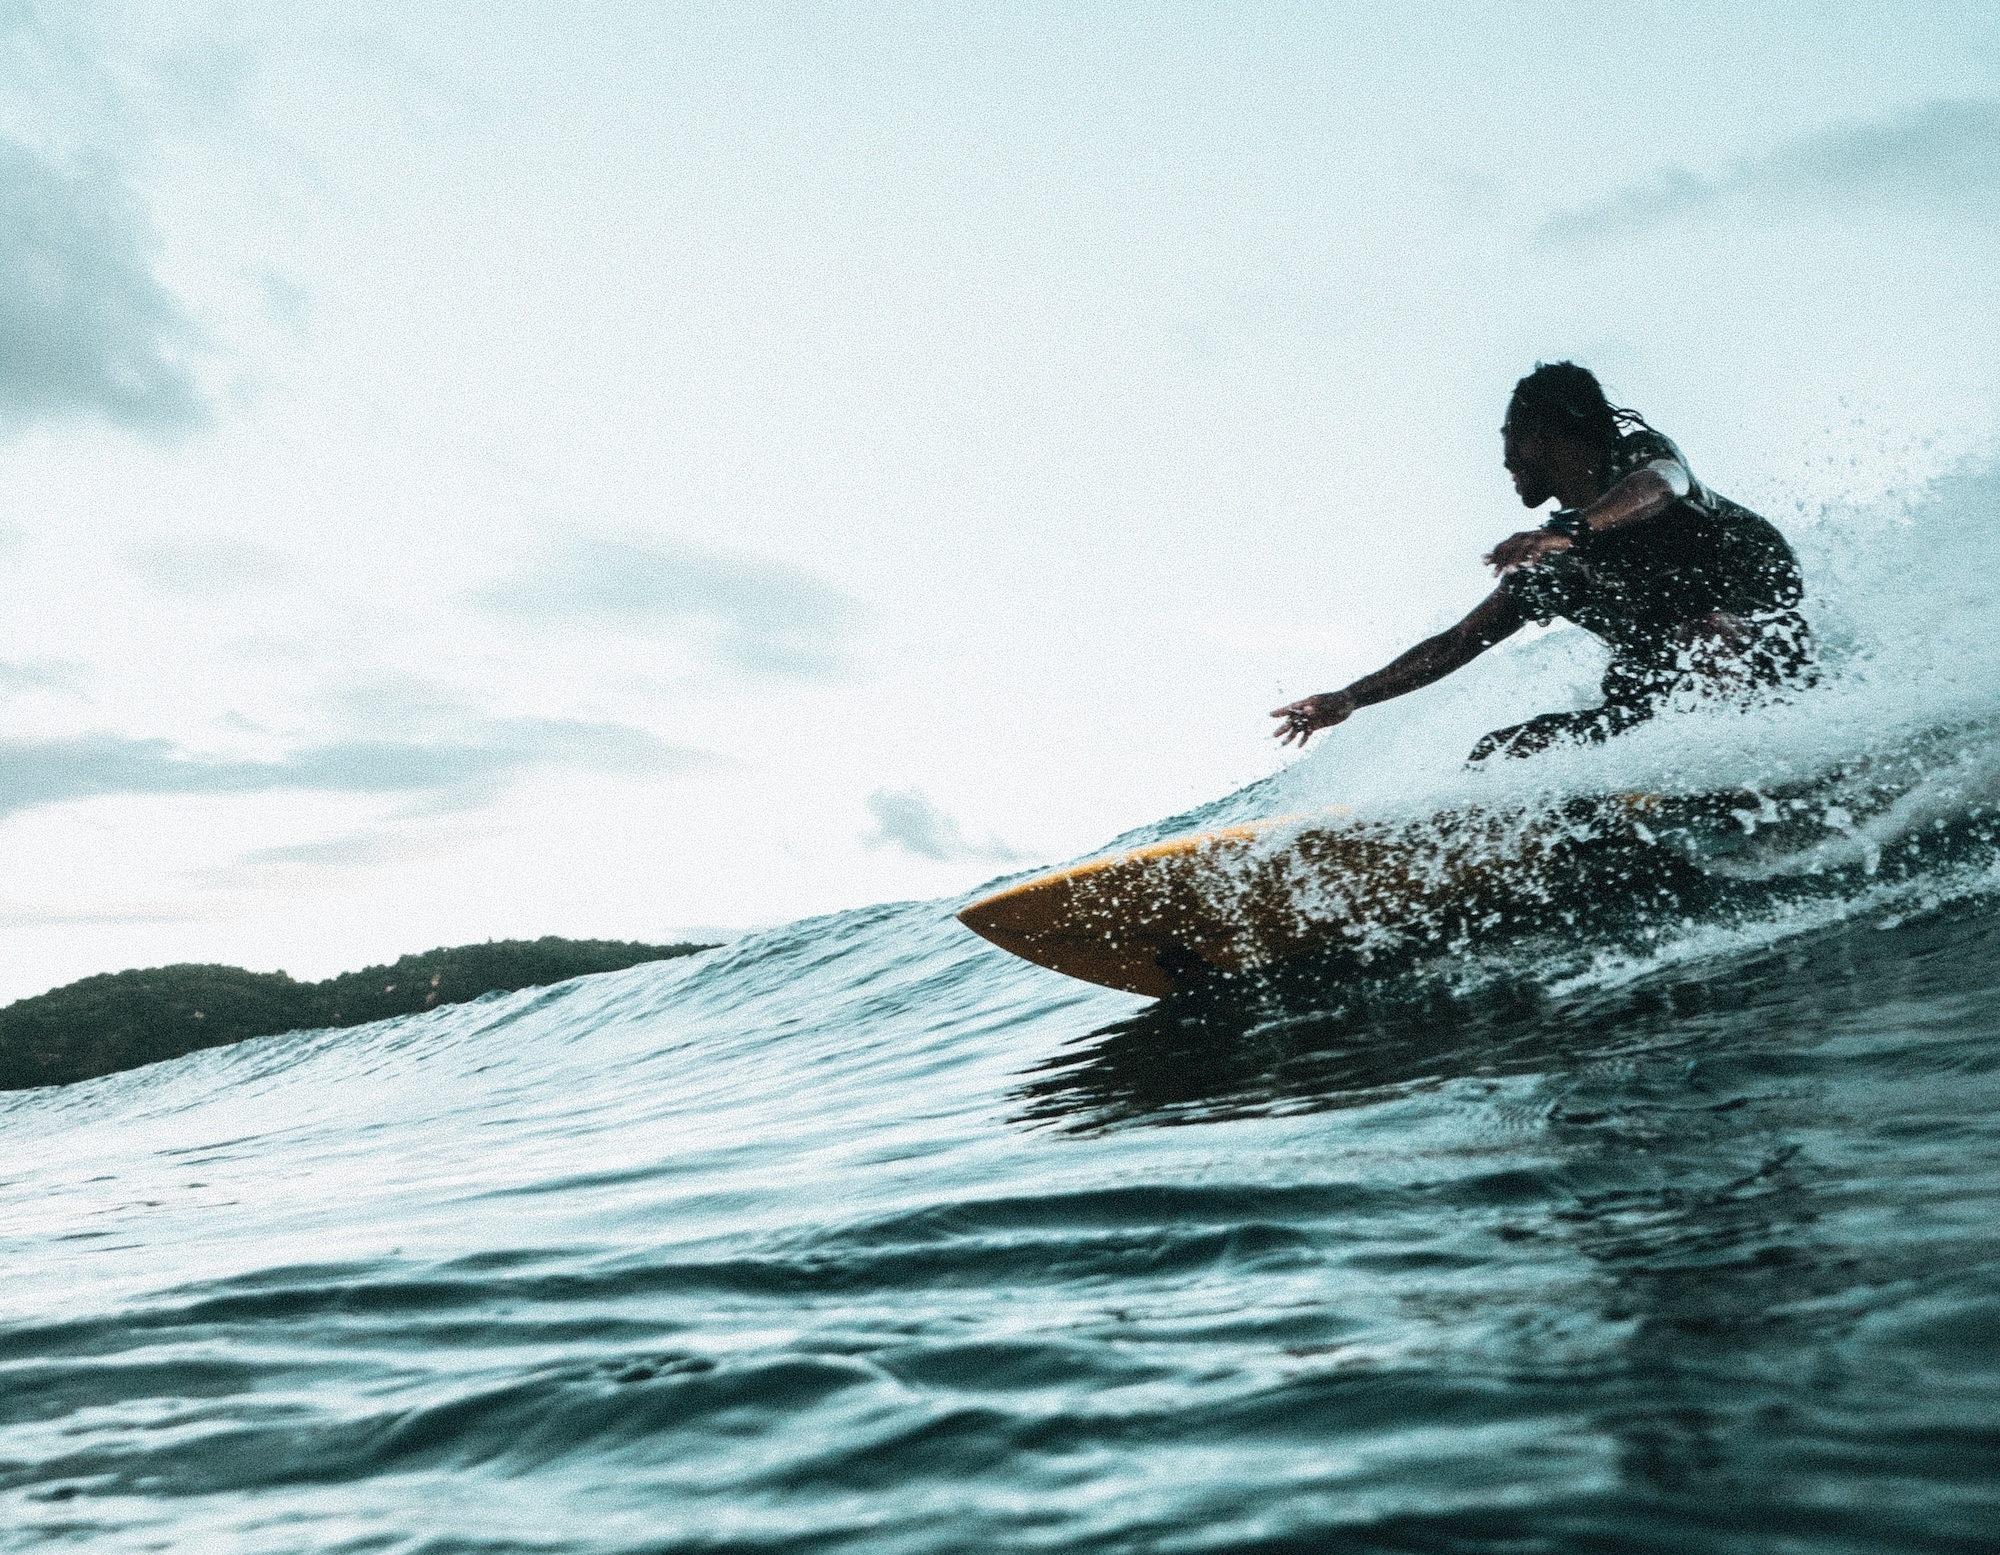 Surf empty, perfect waves in paradise -